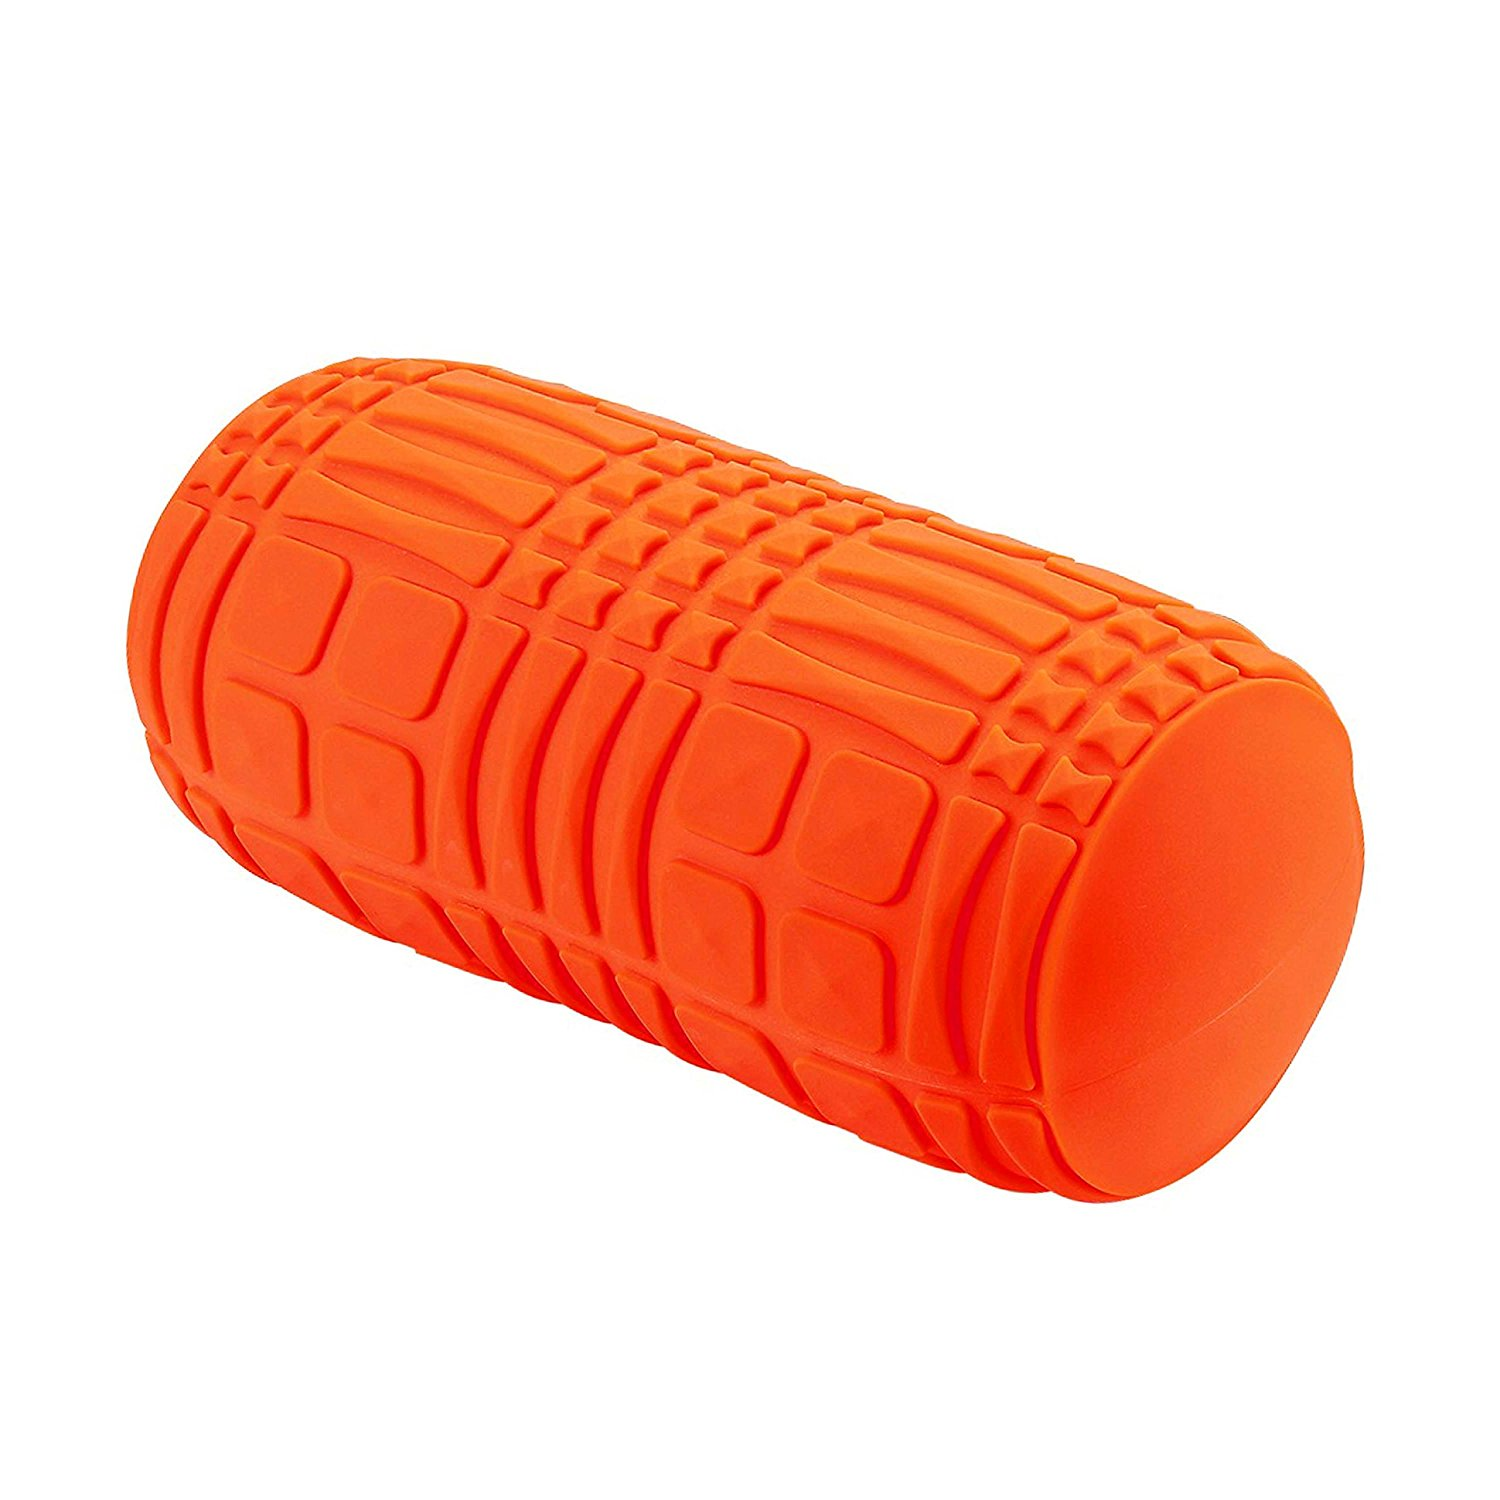 F3BROR Grid Textured Balance Roller Muscle Relaxing Deep Tissue Massage Roller